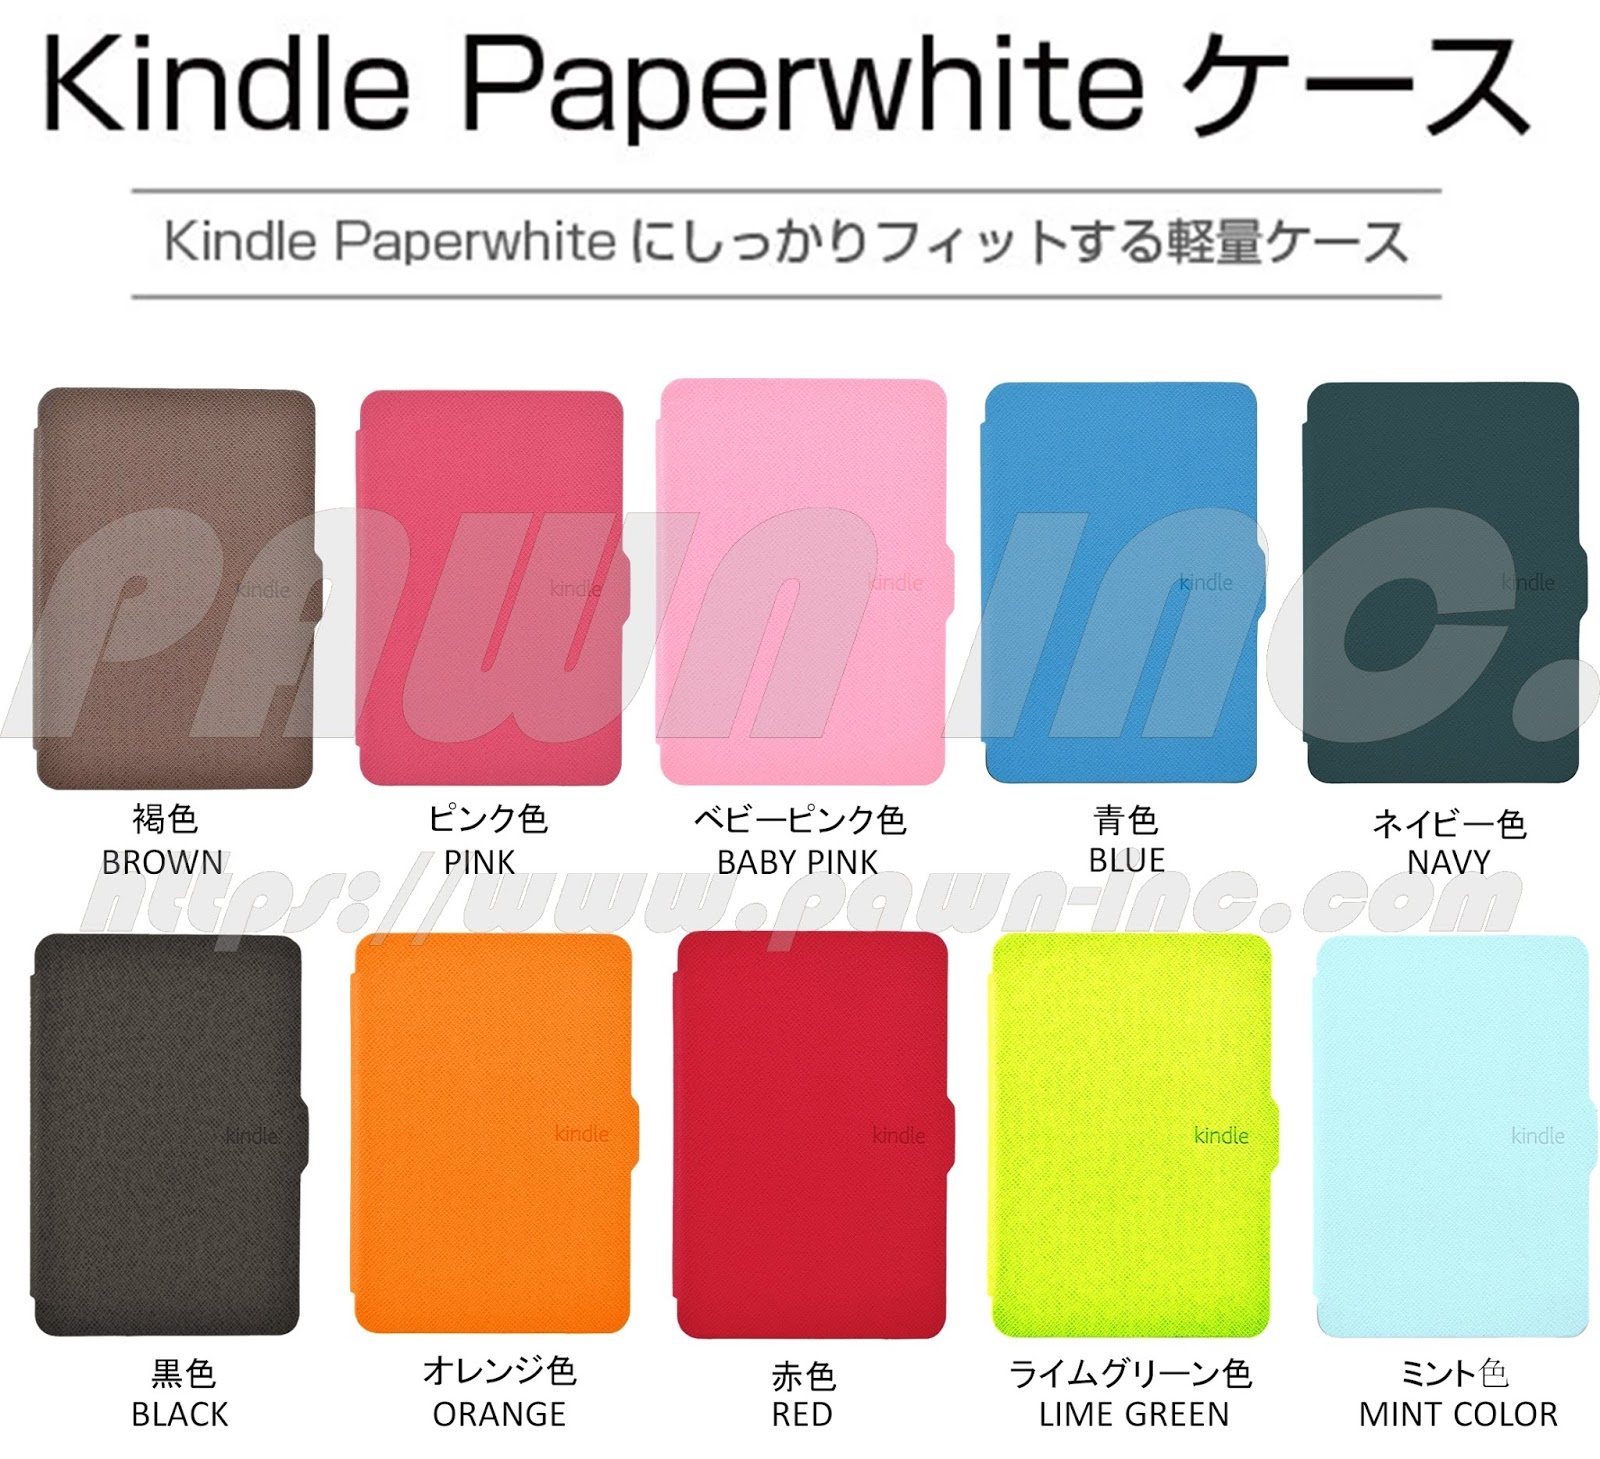 Modern Case for Kindle Paperwhite 1st Gen, 2nd Gen & 3rd Gen